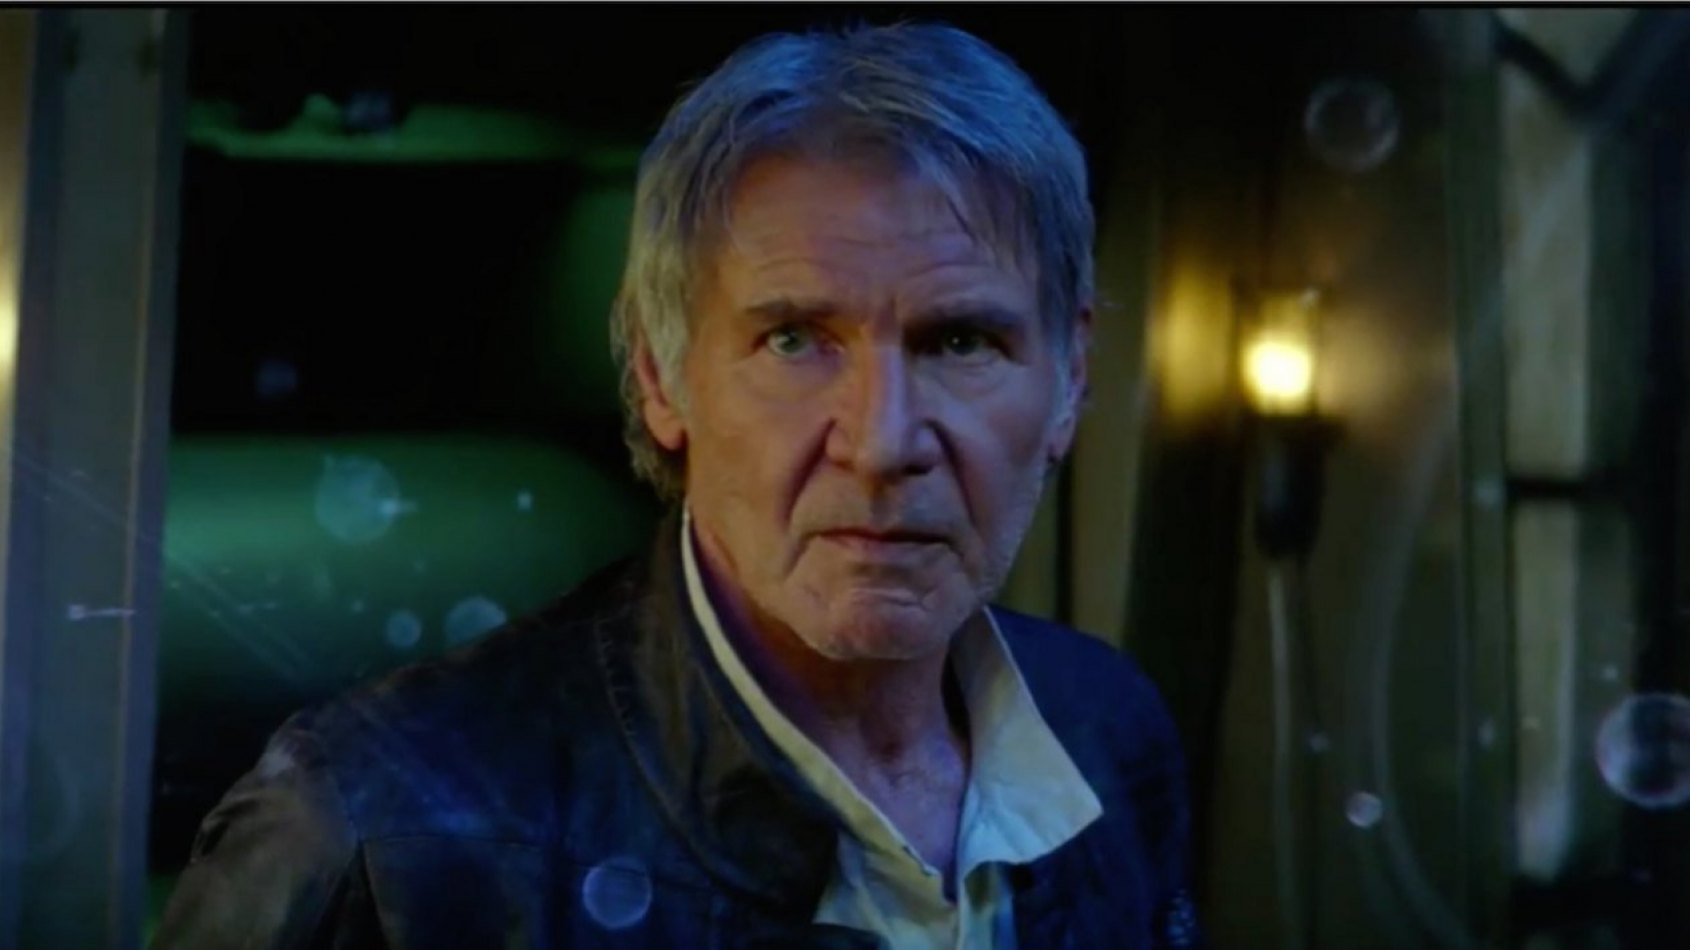 La réaction d'Harrison Ford sur le destin de Han Solo